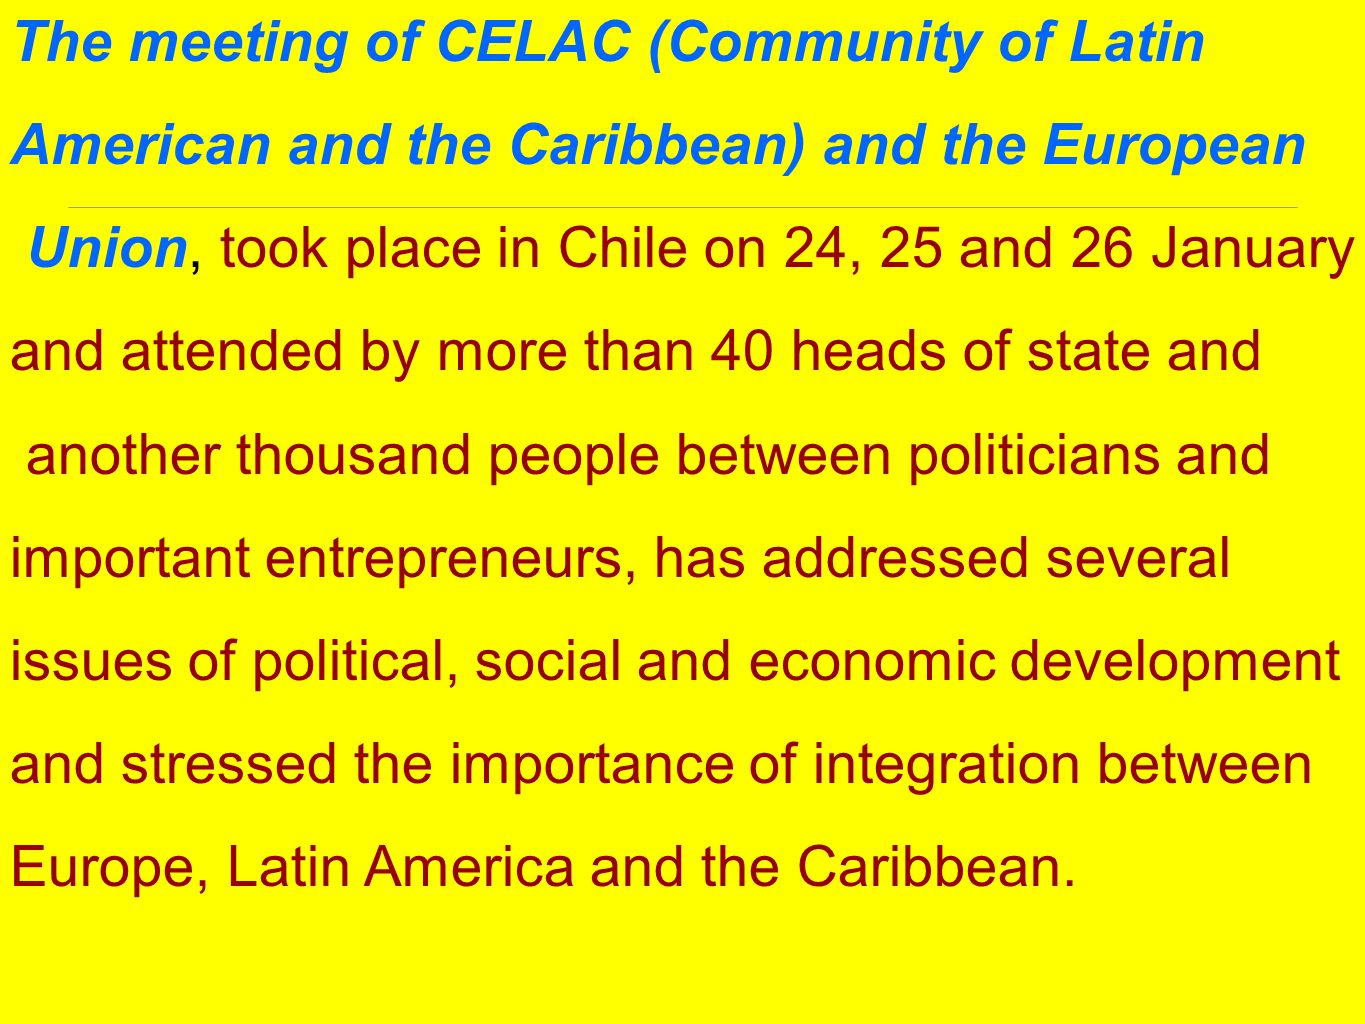 The meeting of CELAC (Community of Latin American and the Caribbean) and the European Union, took place in Chile on 24, 25 and 26 January and attended